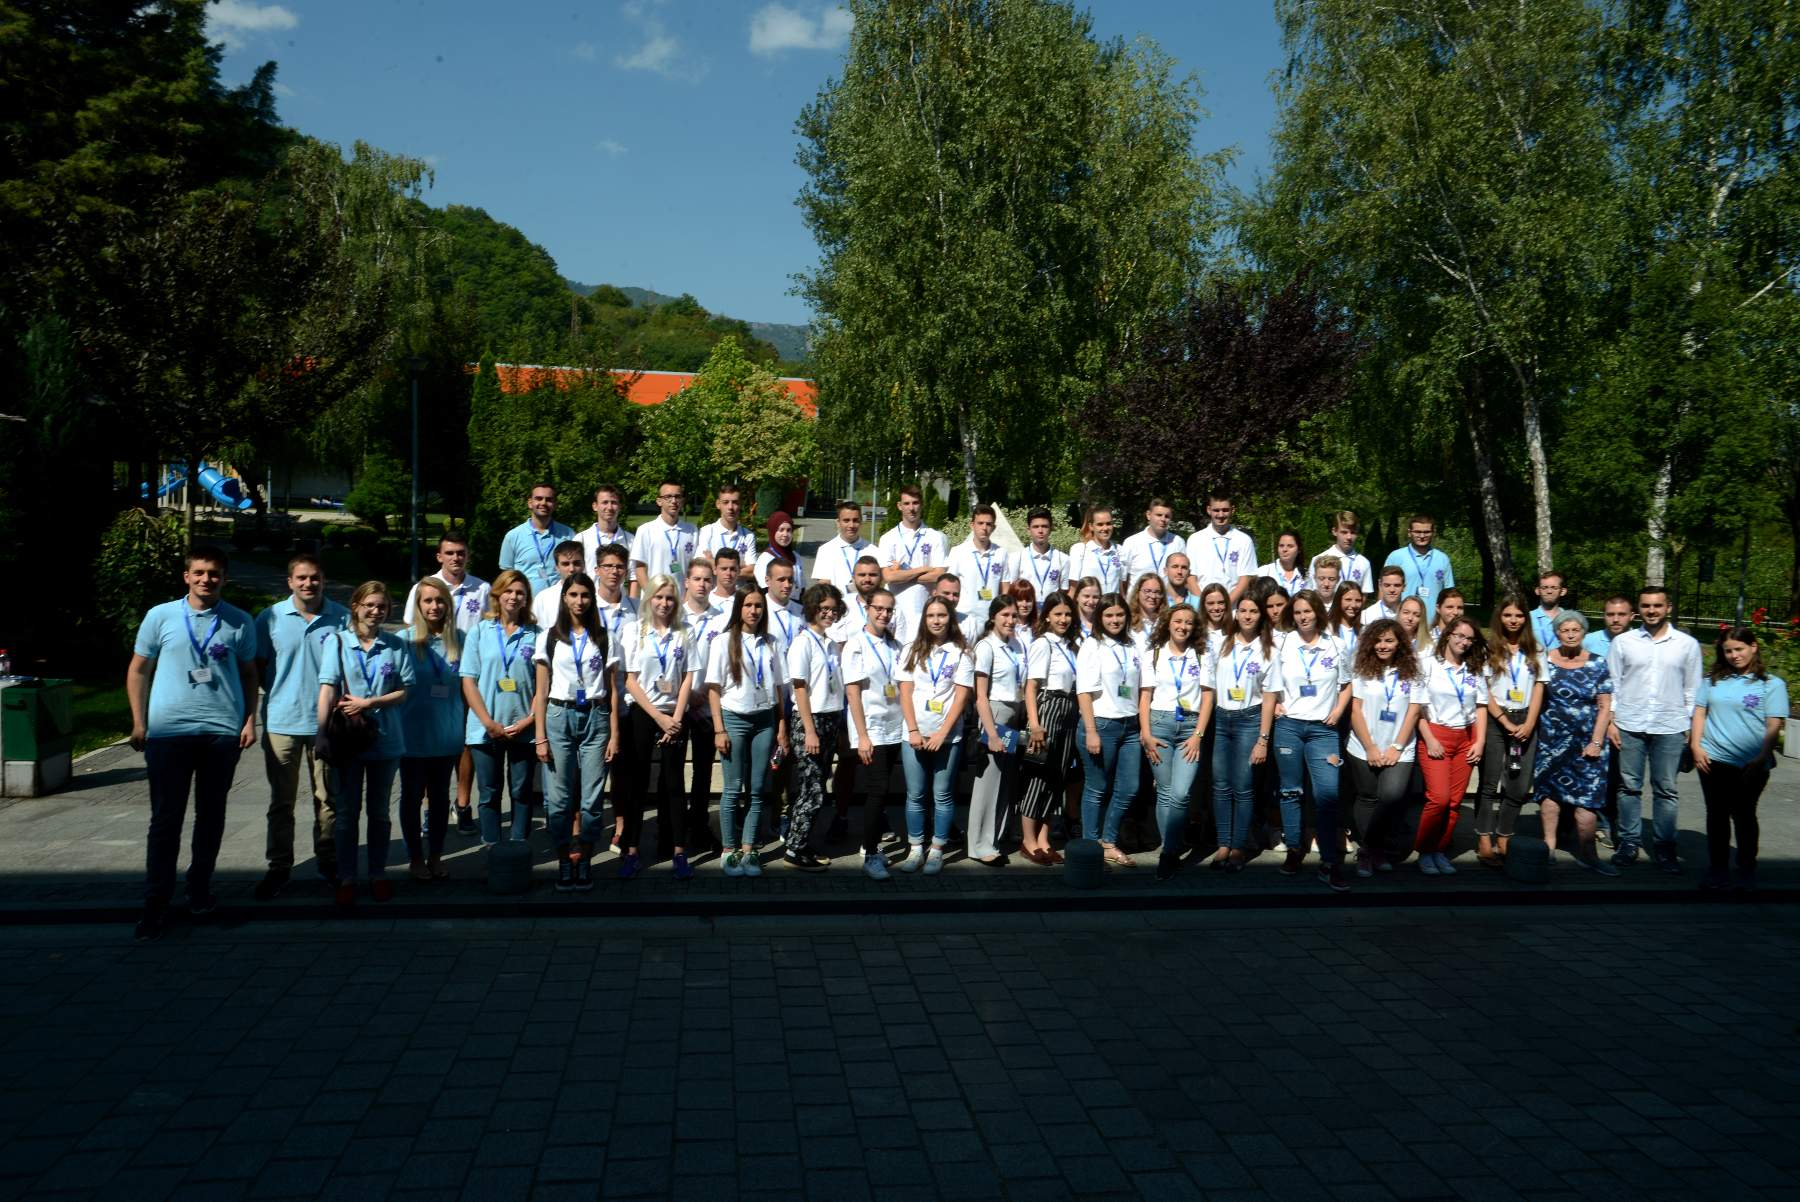 STEM Youth Camp - Pregled i utisci - slika 7.jpg - STEM Youth Camp 2018 - Pregled i utisci